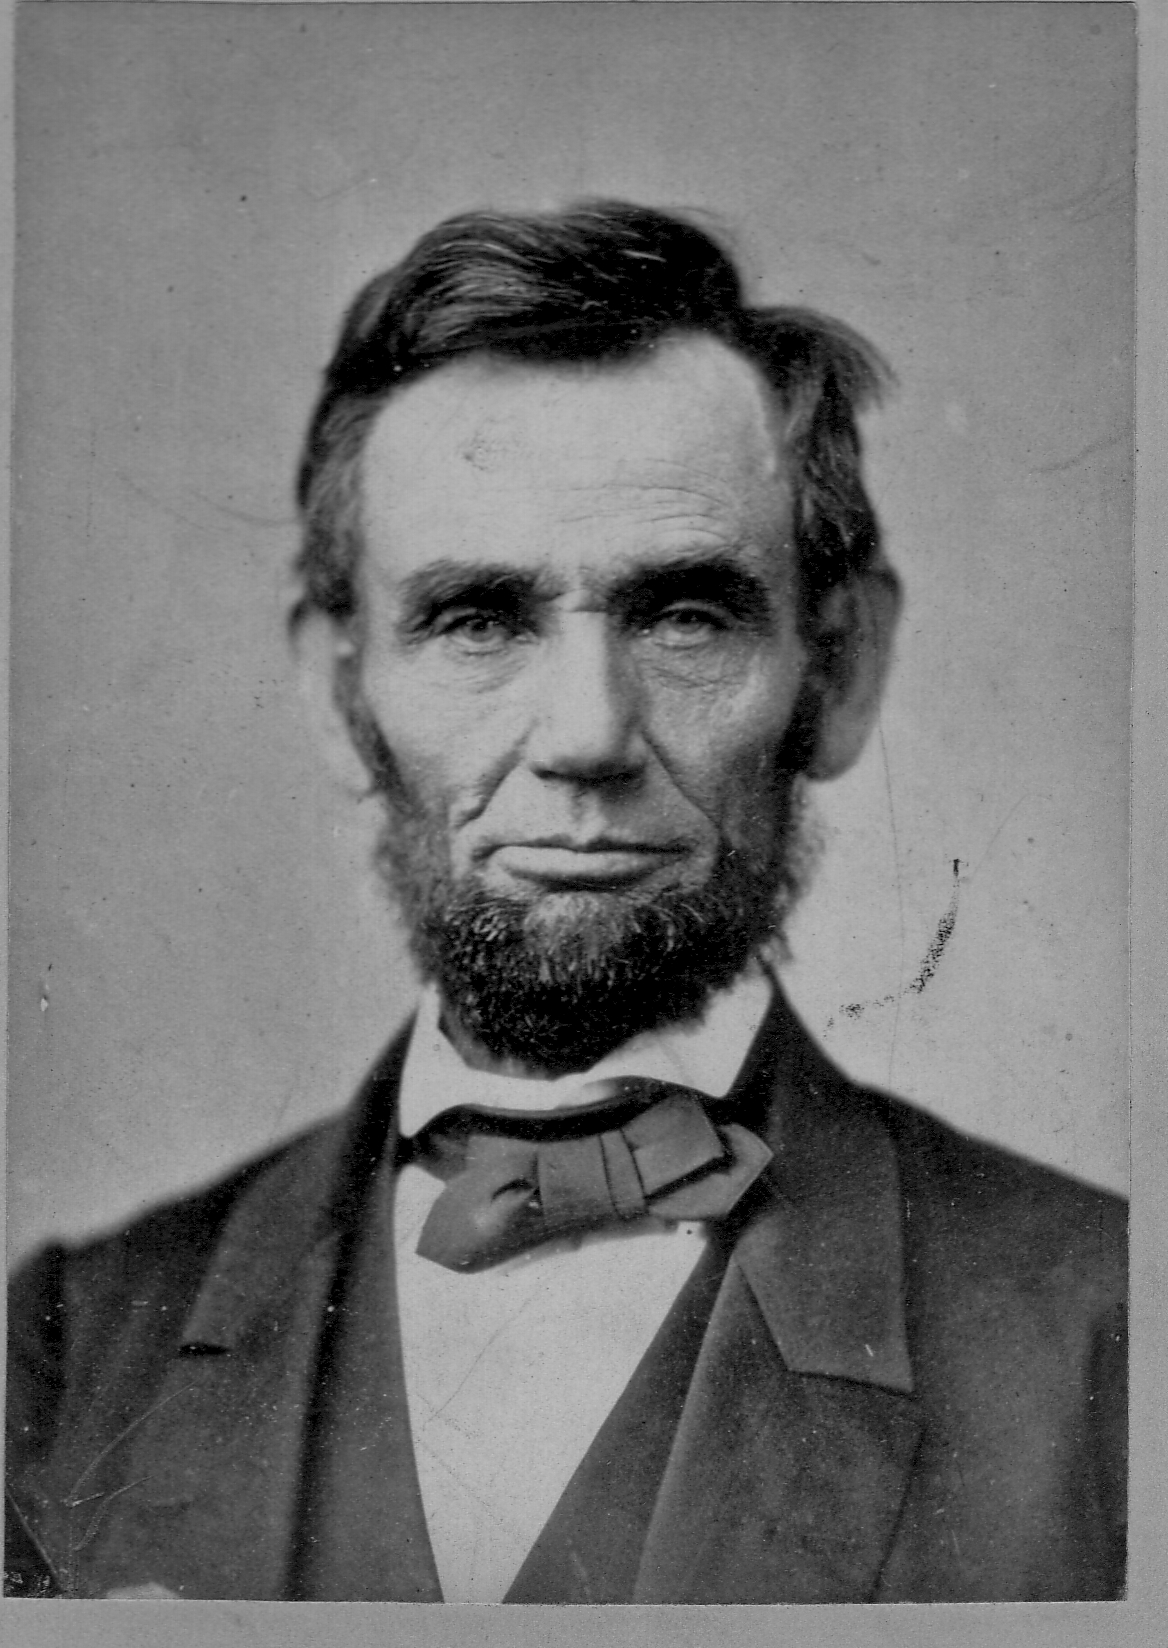 Black and white photo of President Abraham Lincoln. This head-and-shoulders portrait shows him wearing a black jacket, bowtie and white shirt.